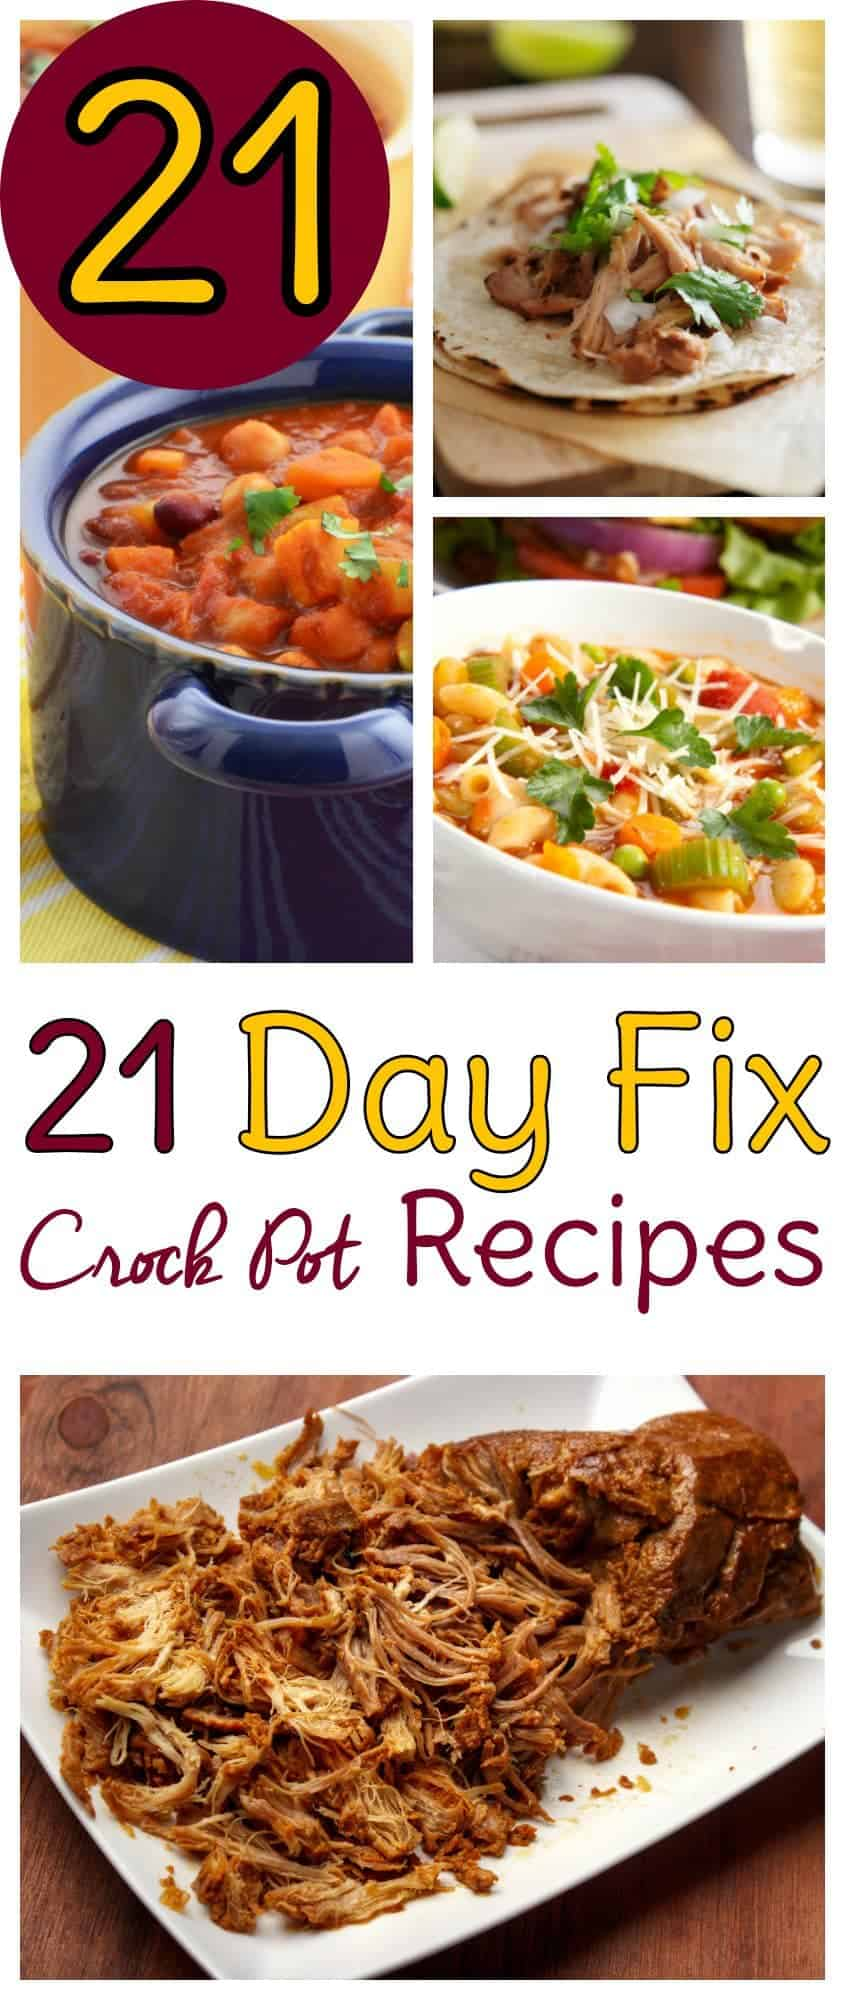 21 Day Fix Crock pot recipes! Use these healthy Crock pot recipes for your 21 Day Fix and set yourself up for success.